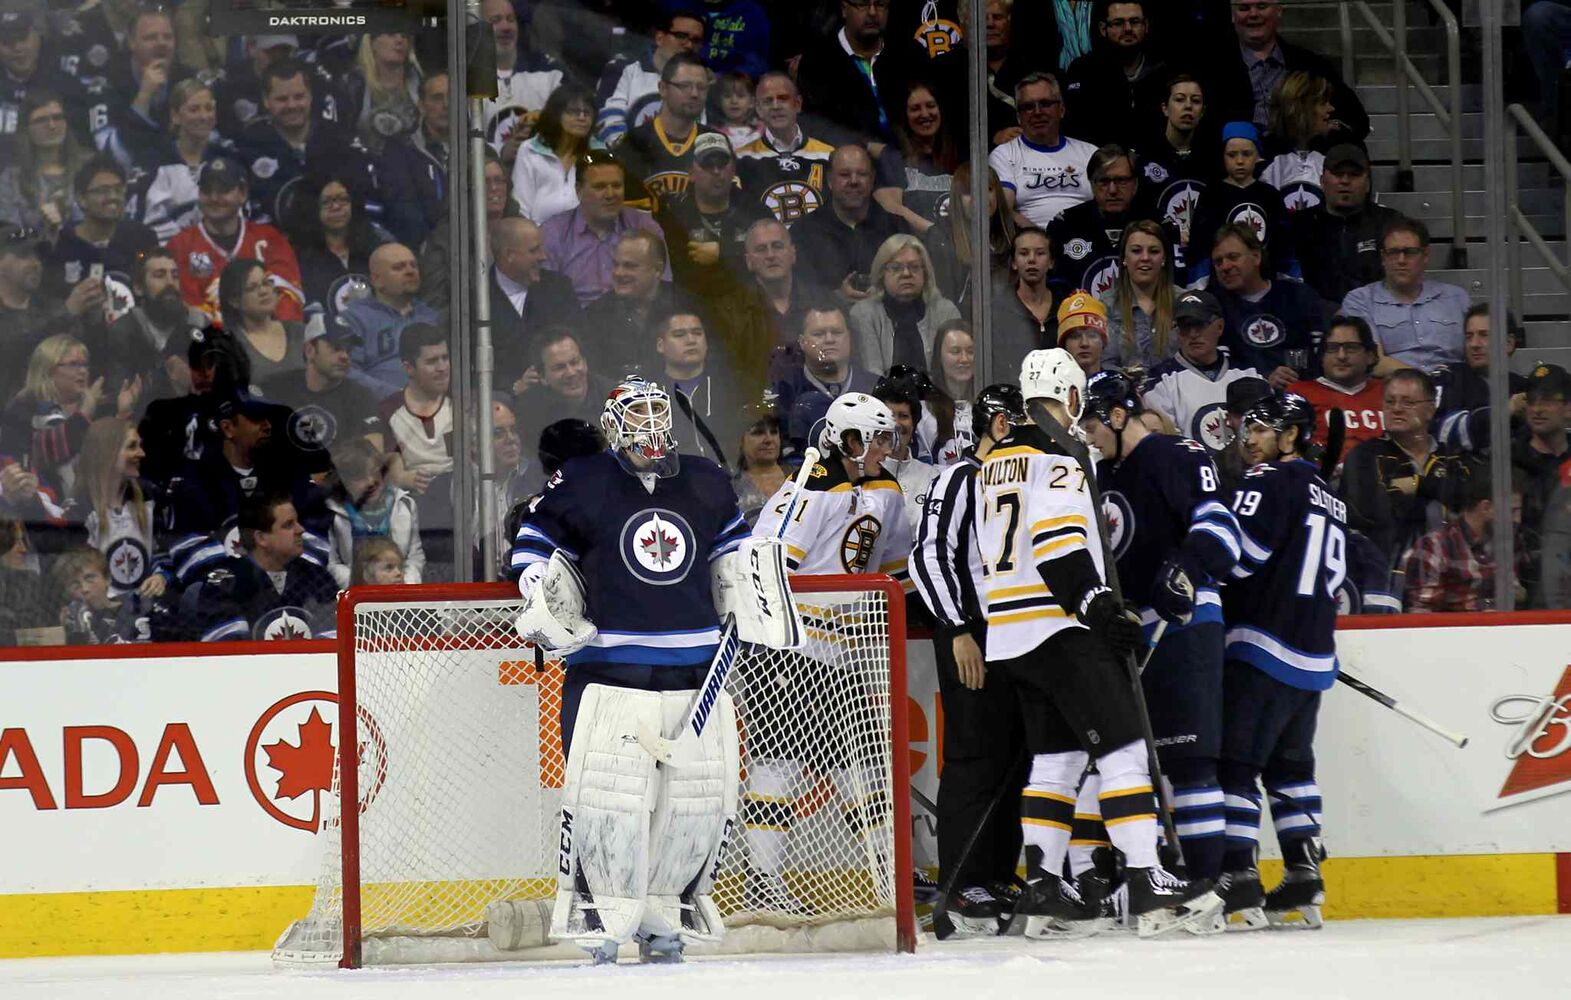 Winnipeg net-minder Michael Hutchinson watches the replay while other players sort it out behind the net during the second period of Thursday's game. (Phil Hossack / Winnipeg Free Press)